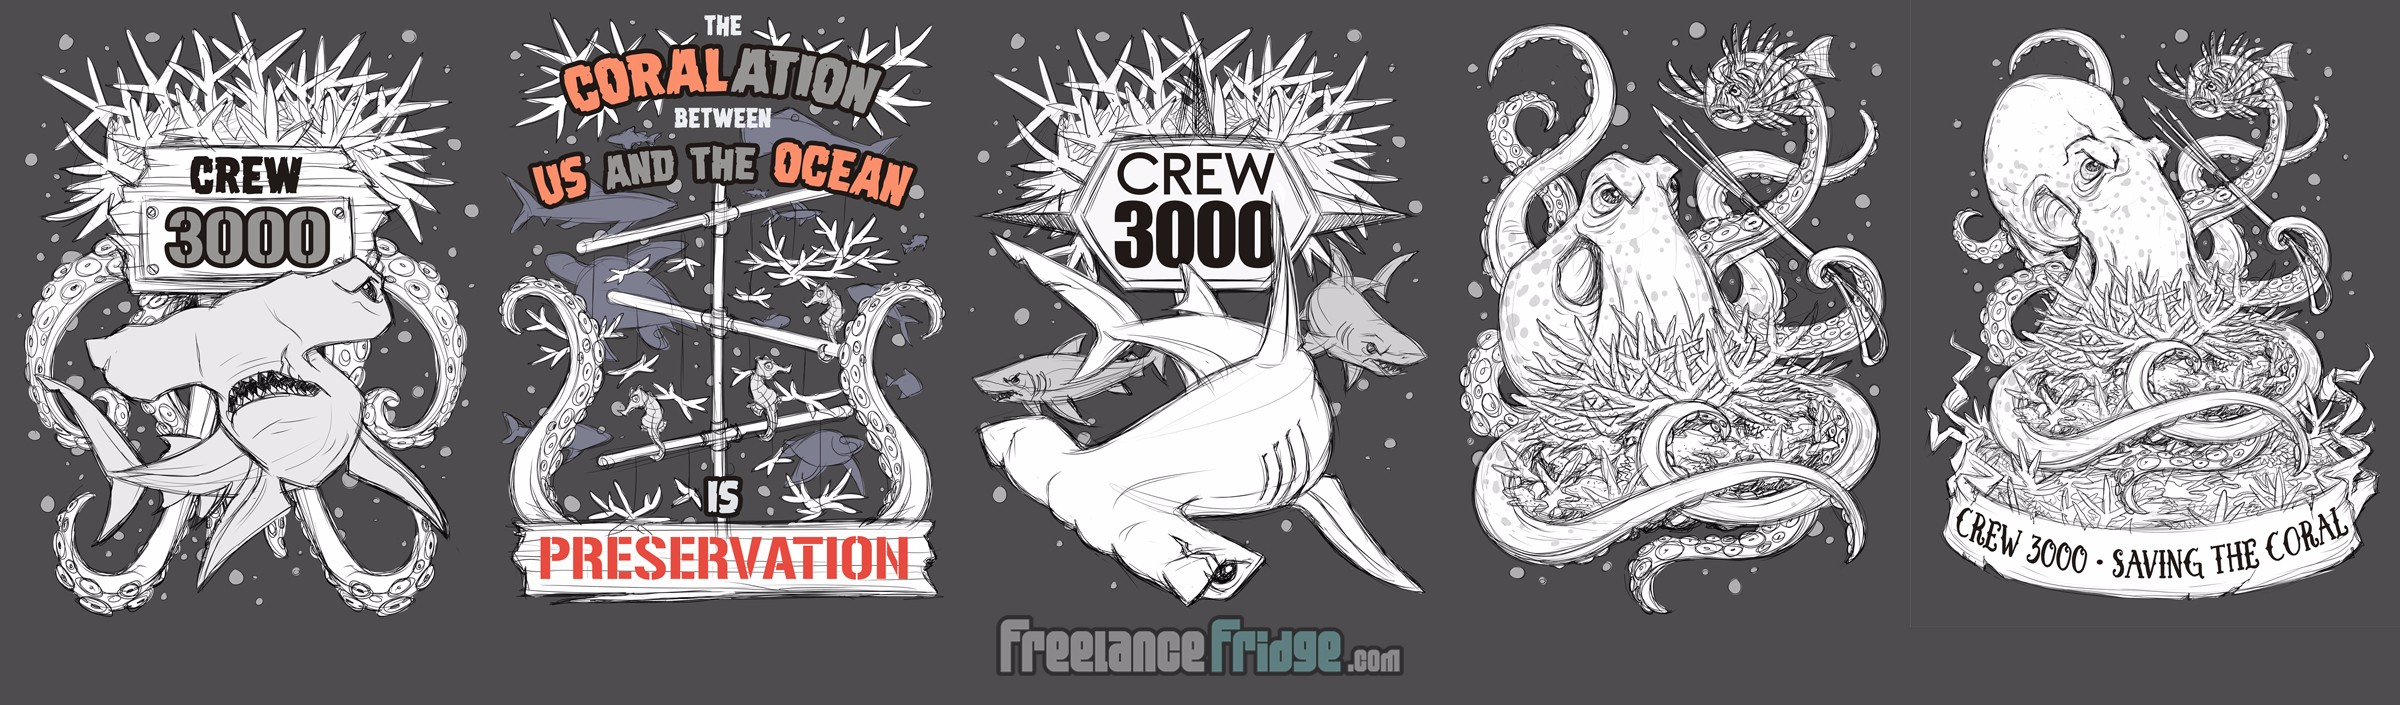 Ocean Conservation Saving the Corals Rescuing Sea Life Club T-Shirt Concept Sketches